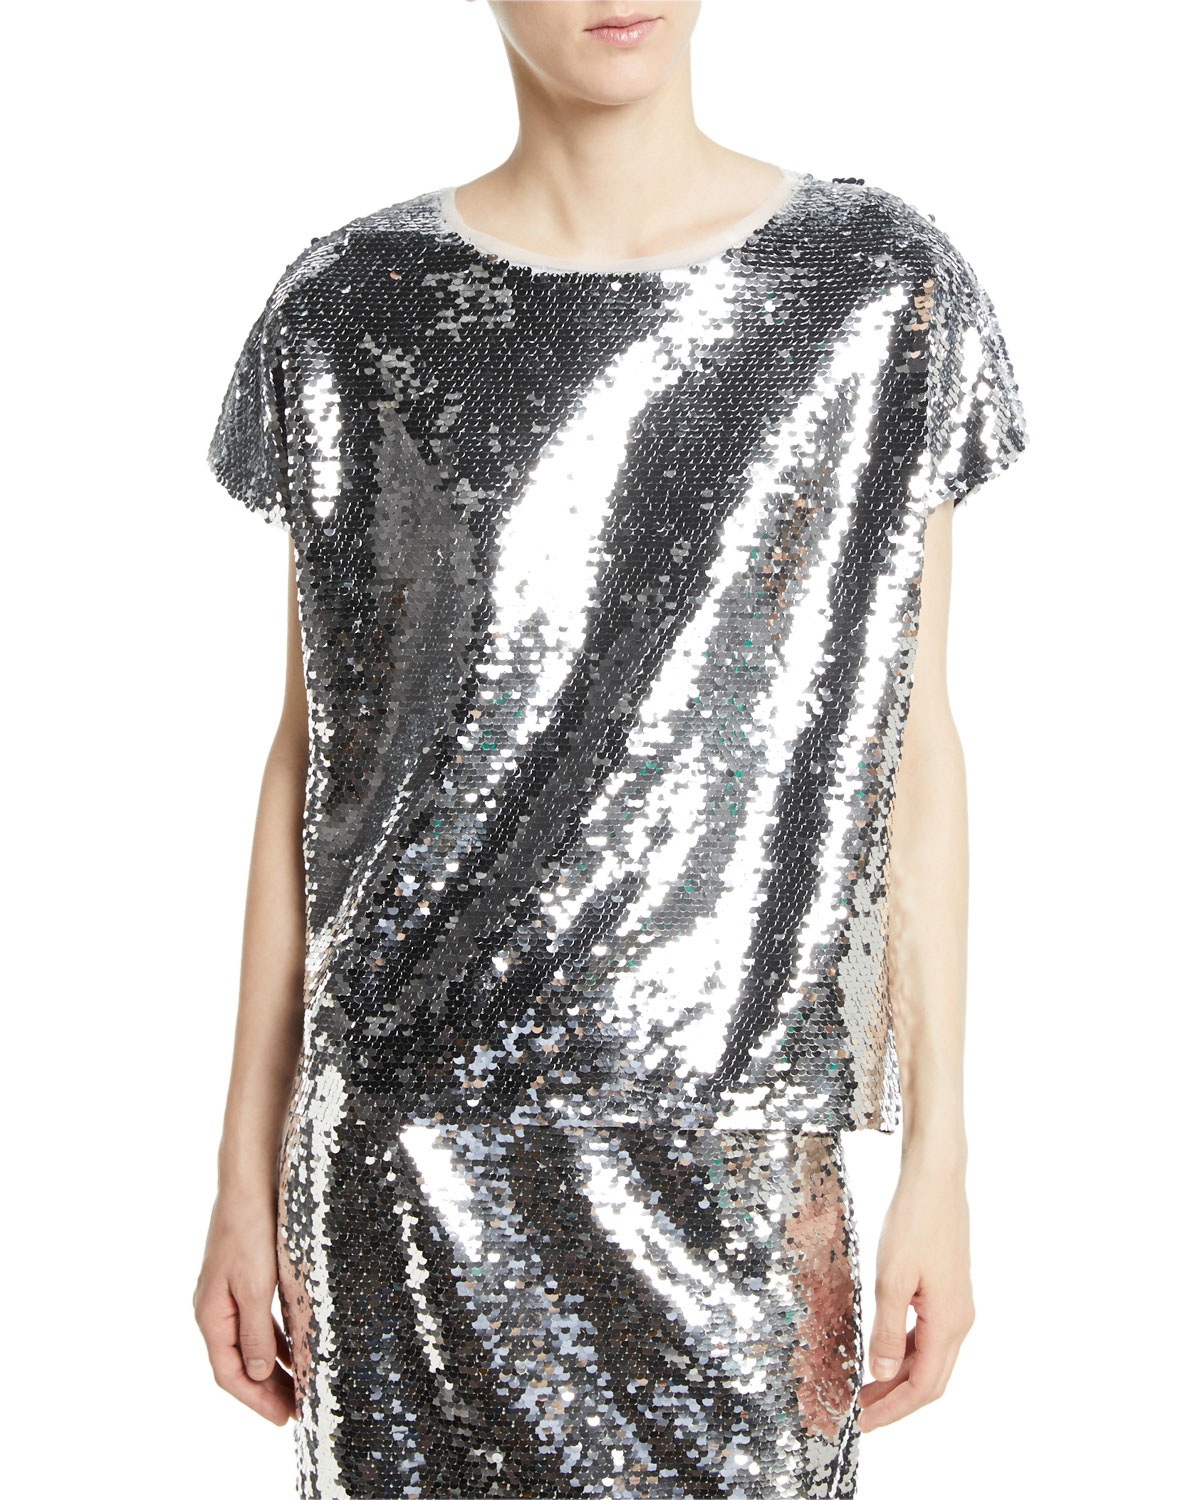 Gozleme Short-Sleeve Sequin Top